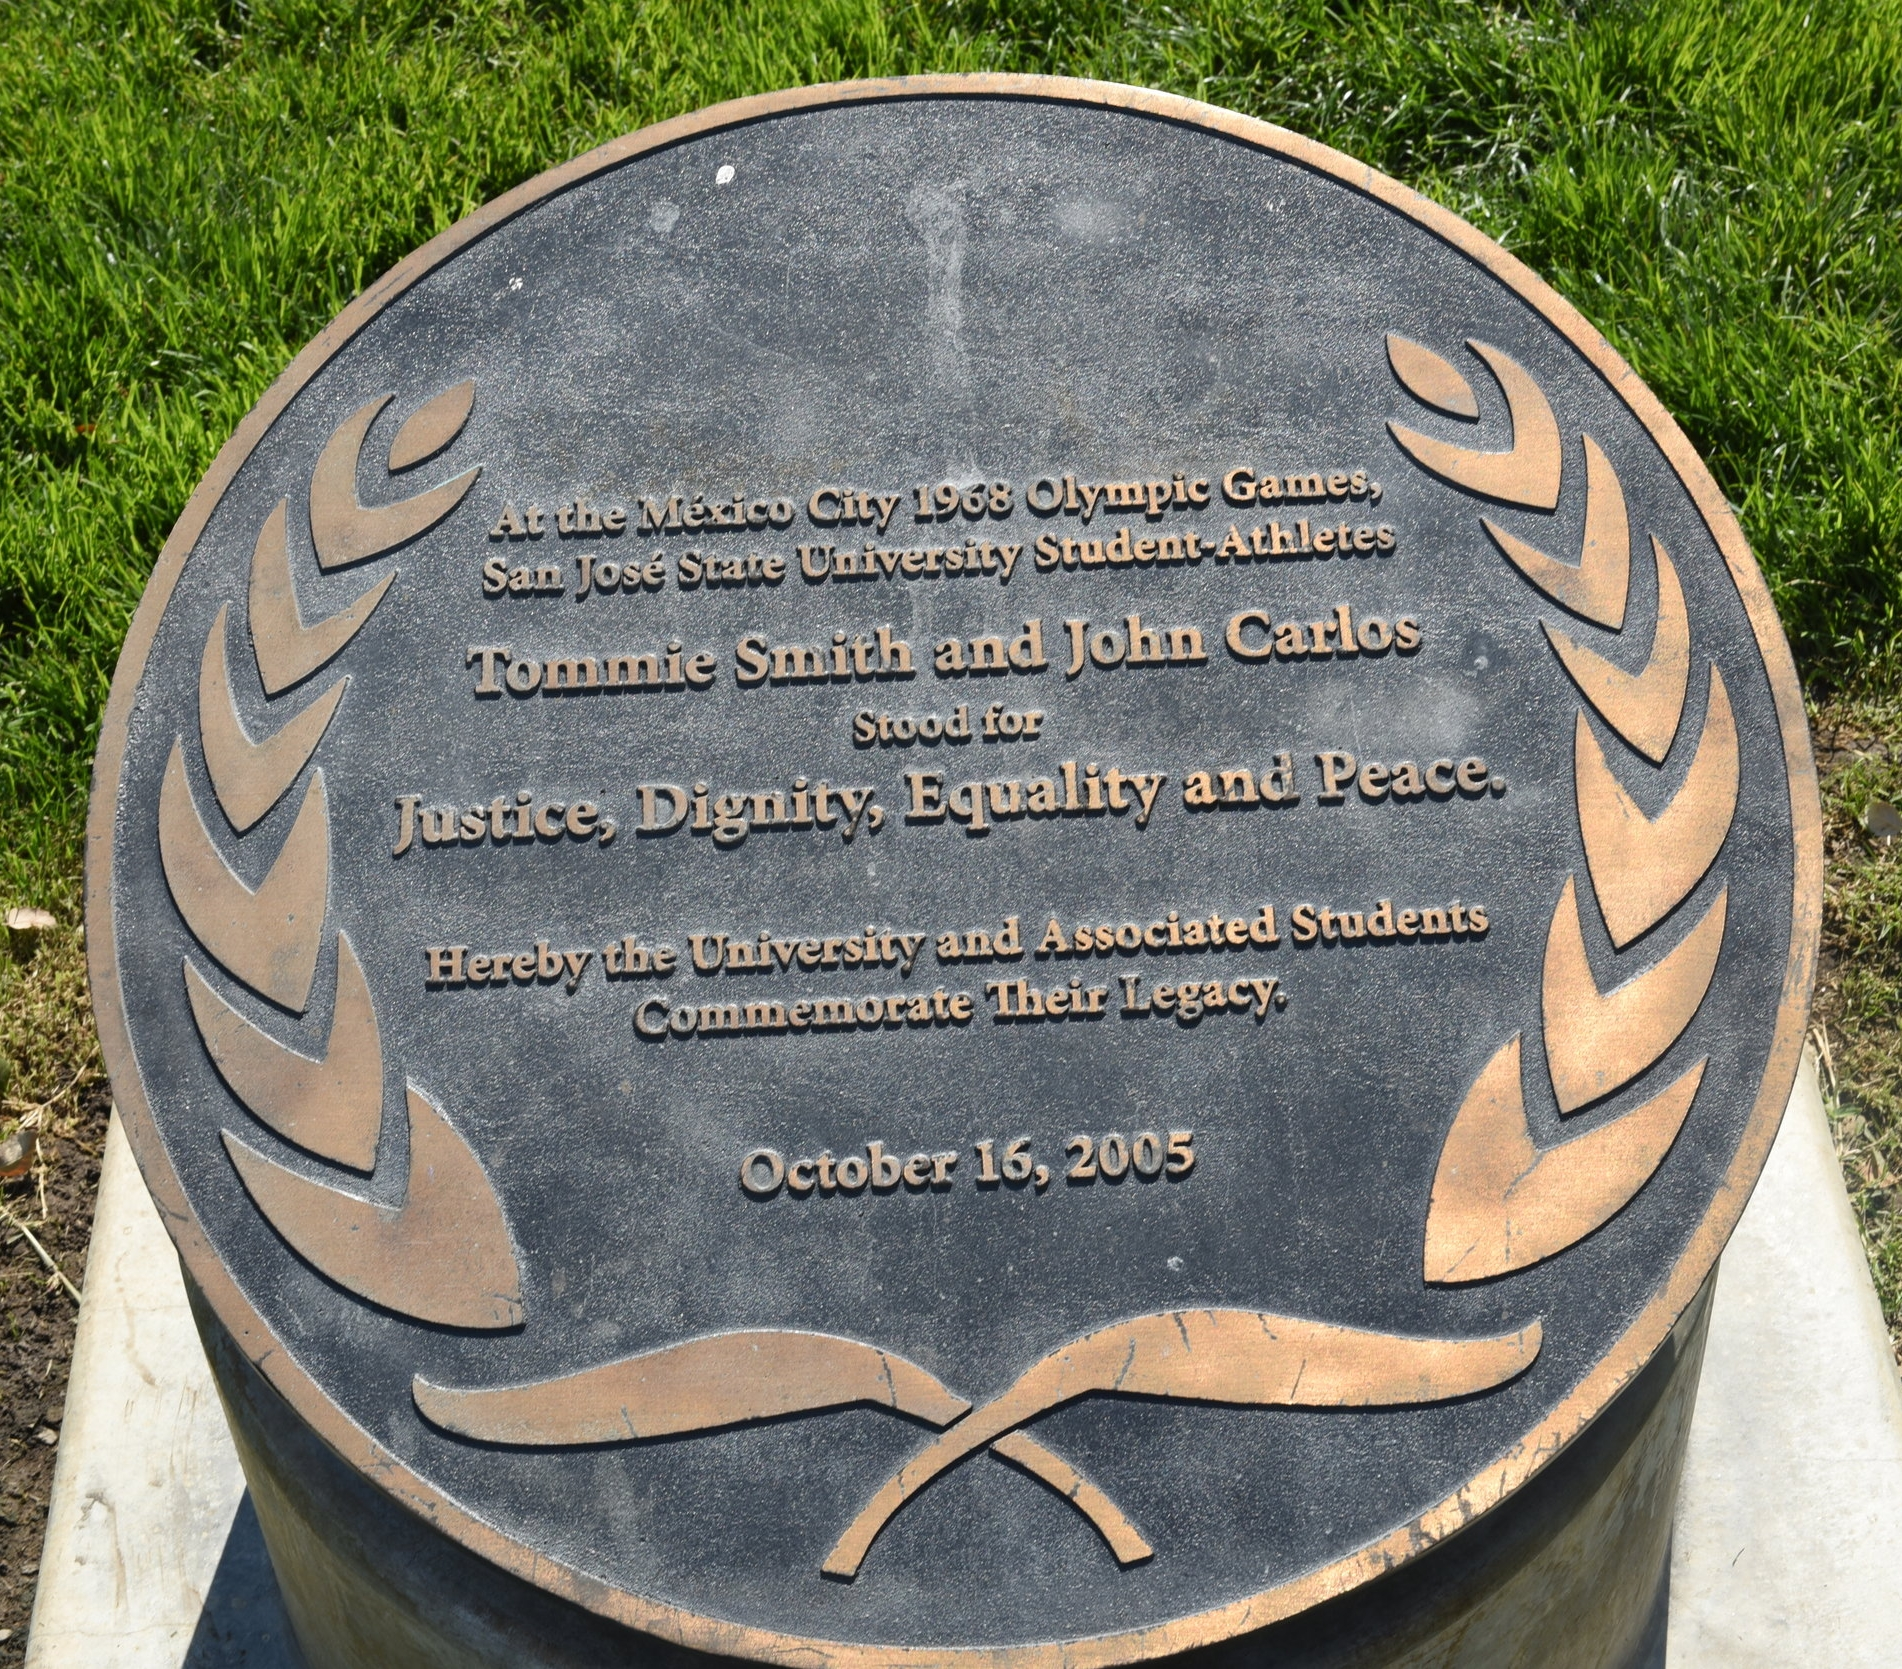 The plaque is beside the 22-foot statue in the centre of the San Jose State University campus